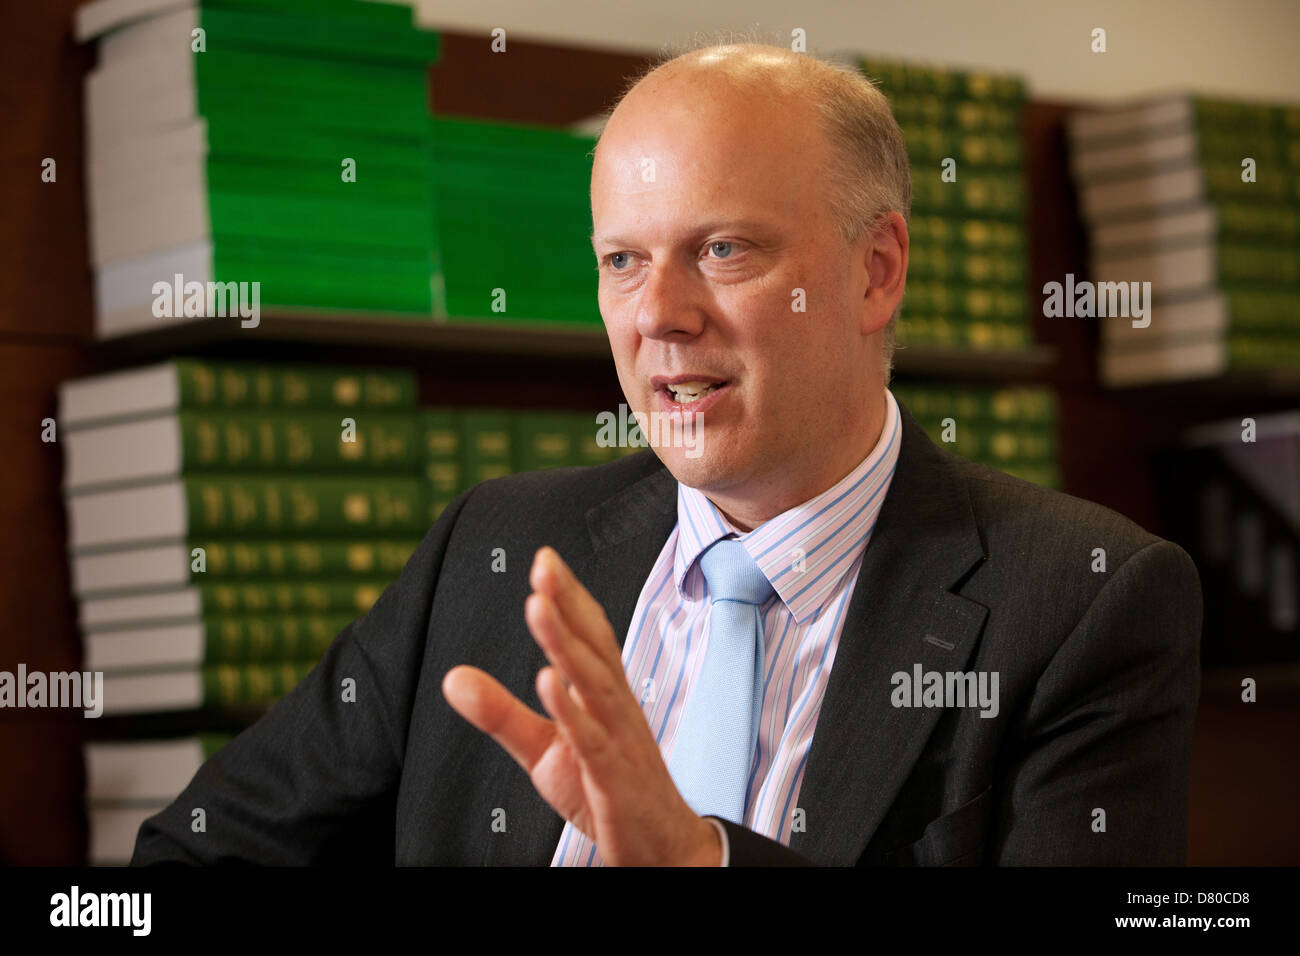 Chris Grayling MP and Lord Chancellor and Secretary of State for Justice - Stock Image